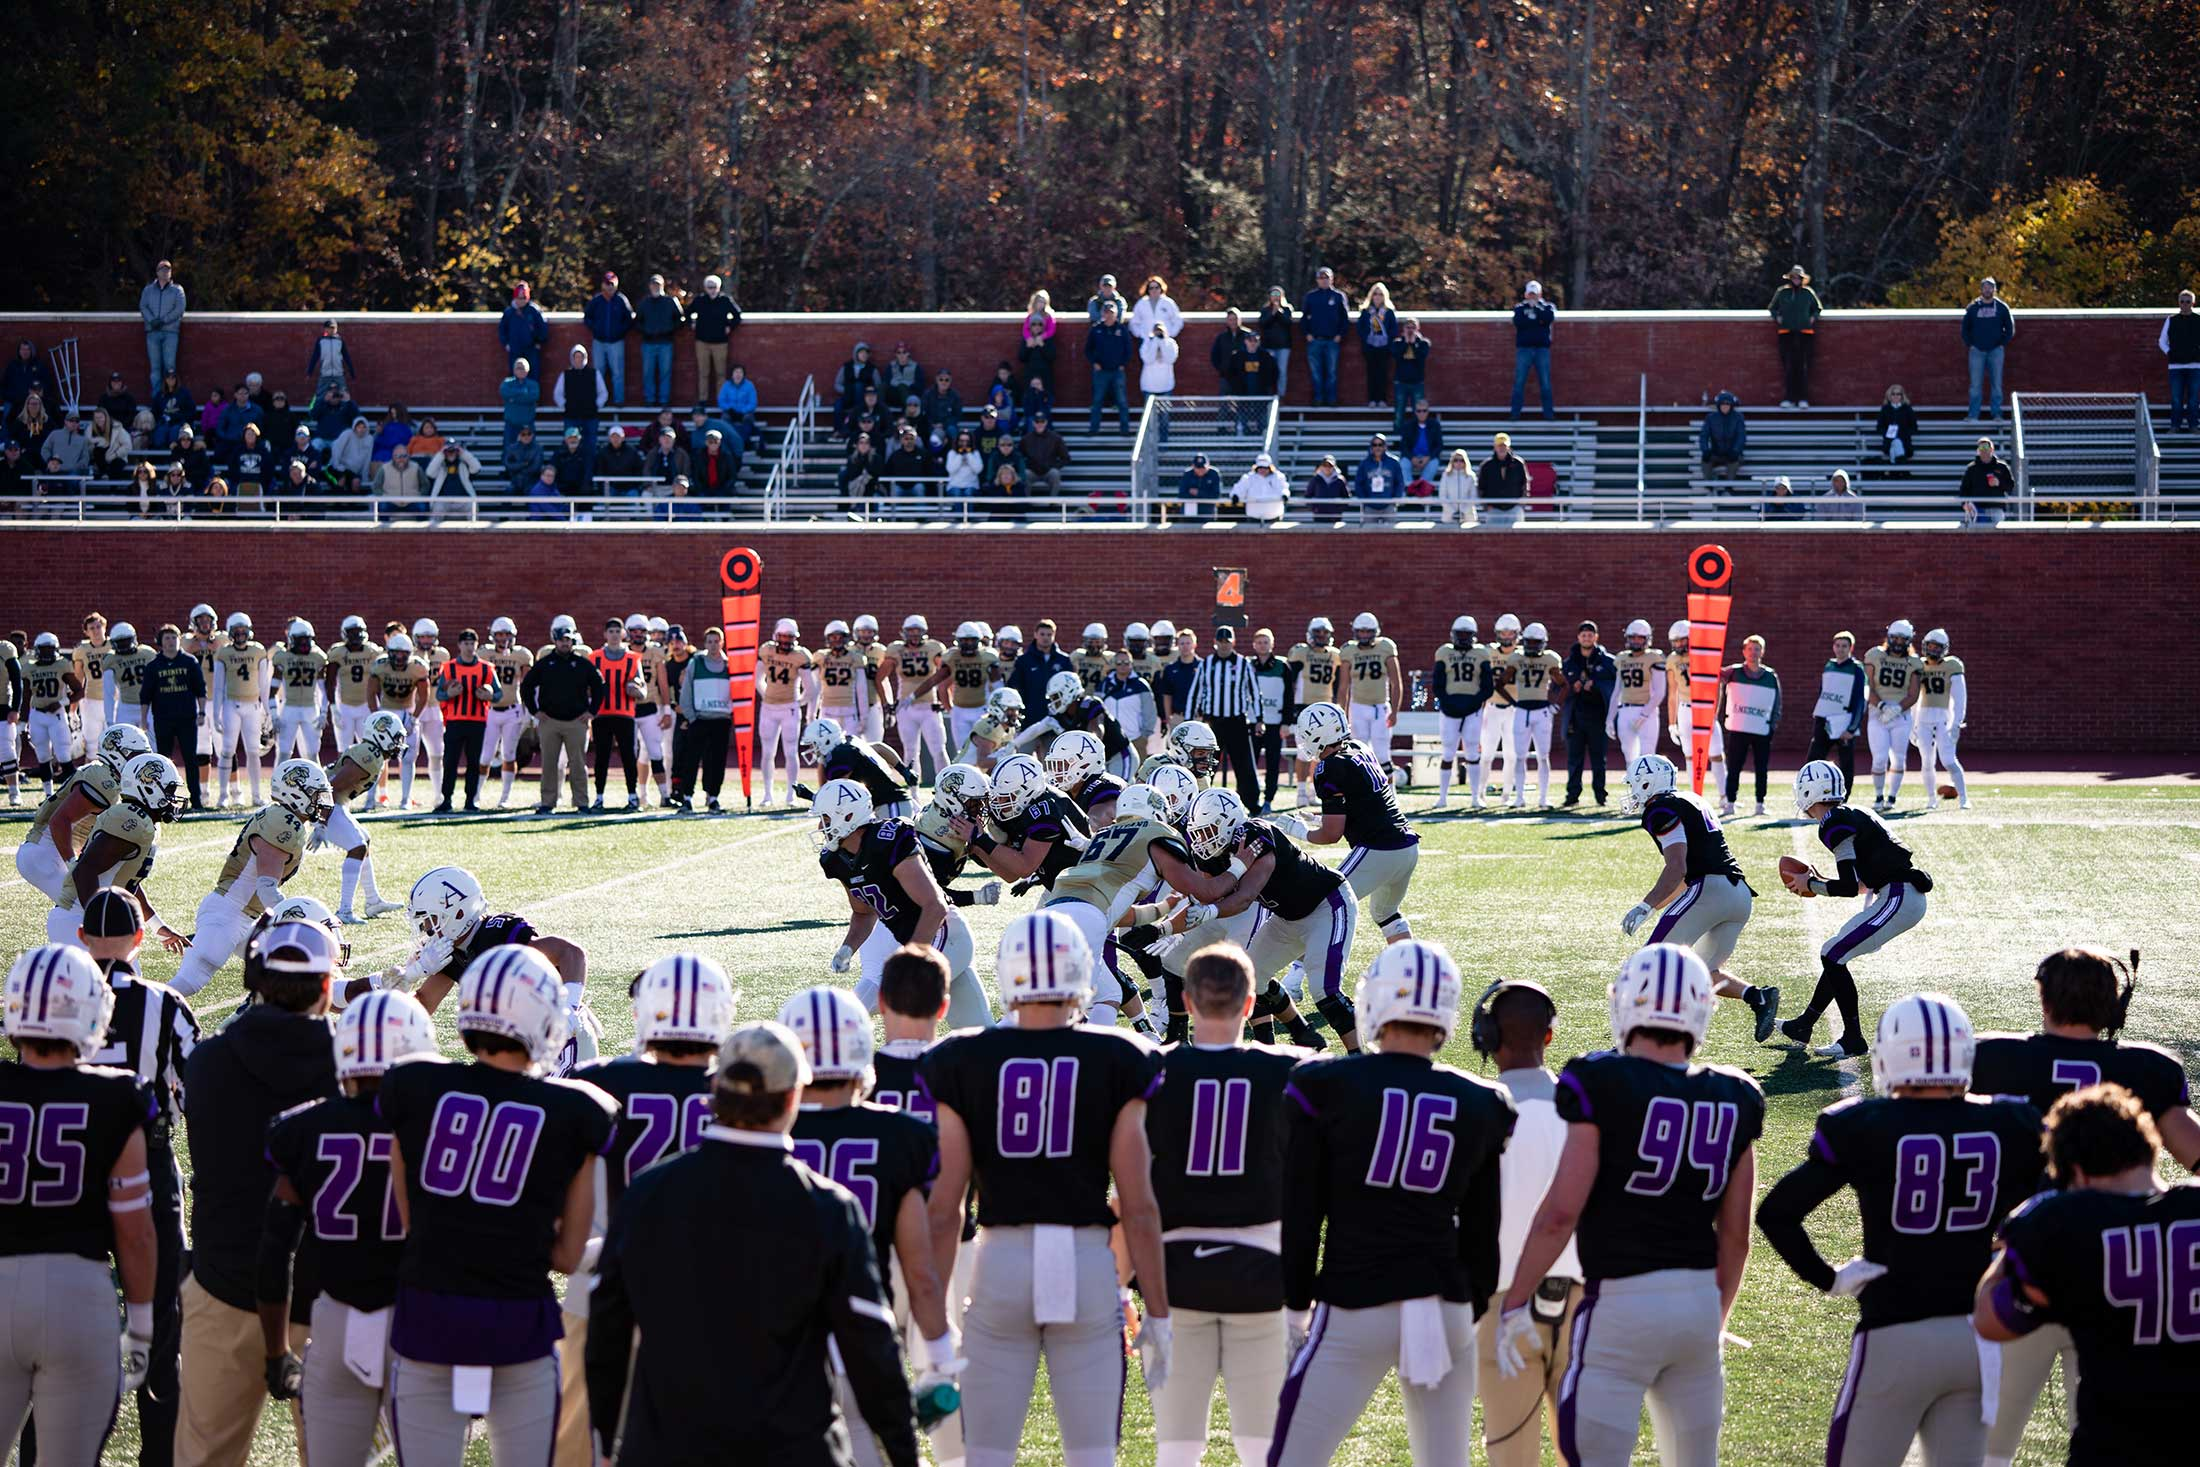 Football game between Amherst College and Trinity College